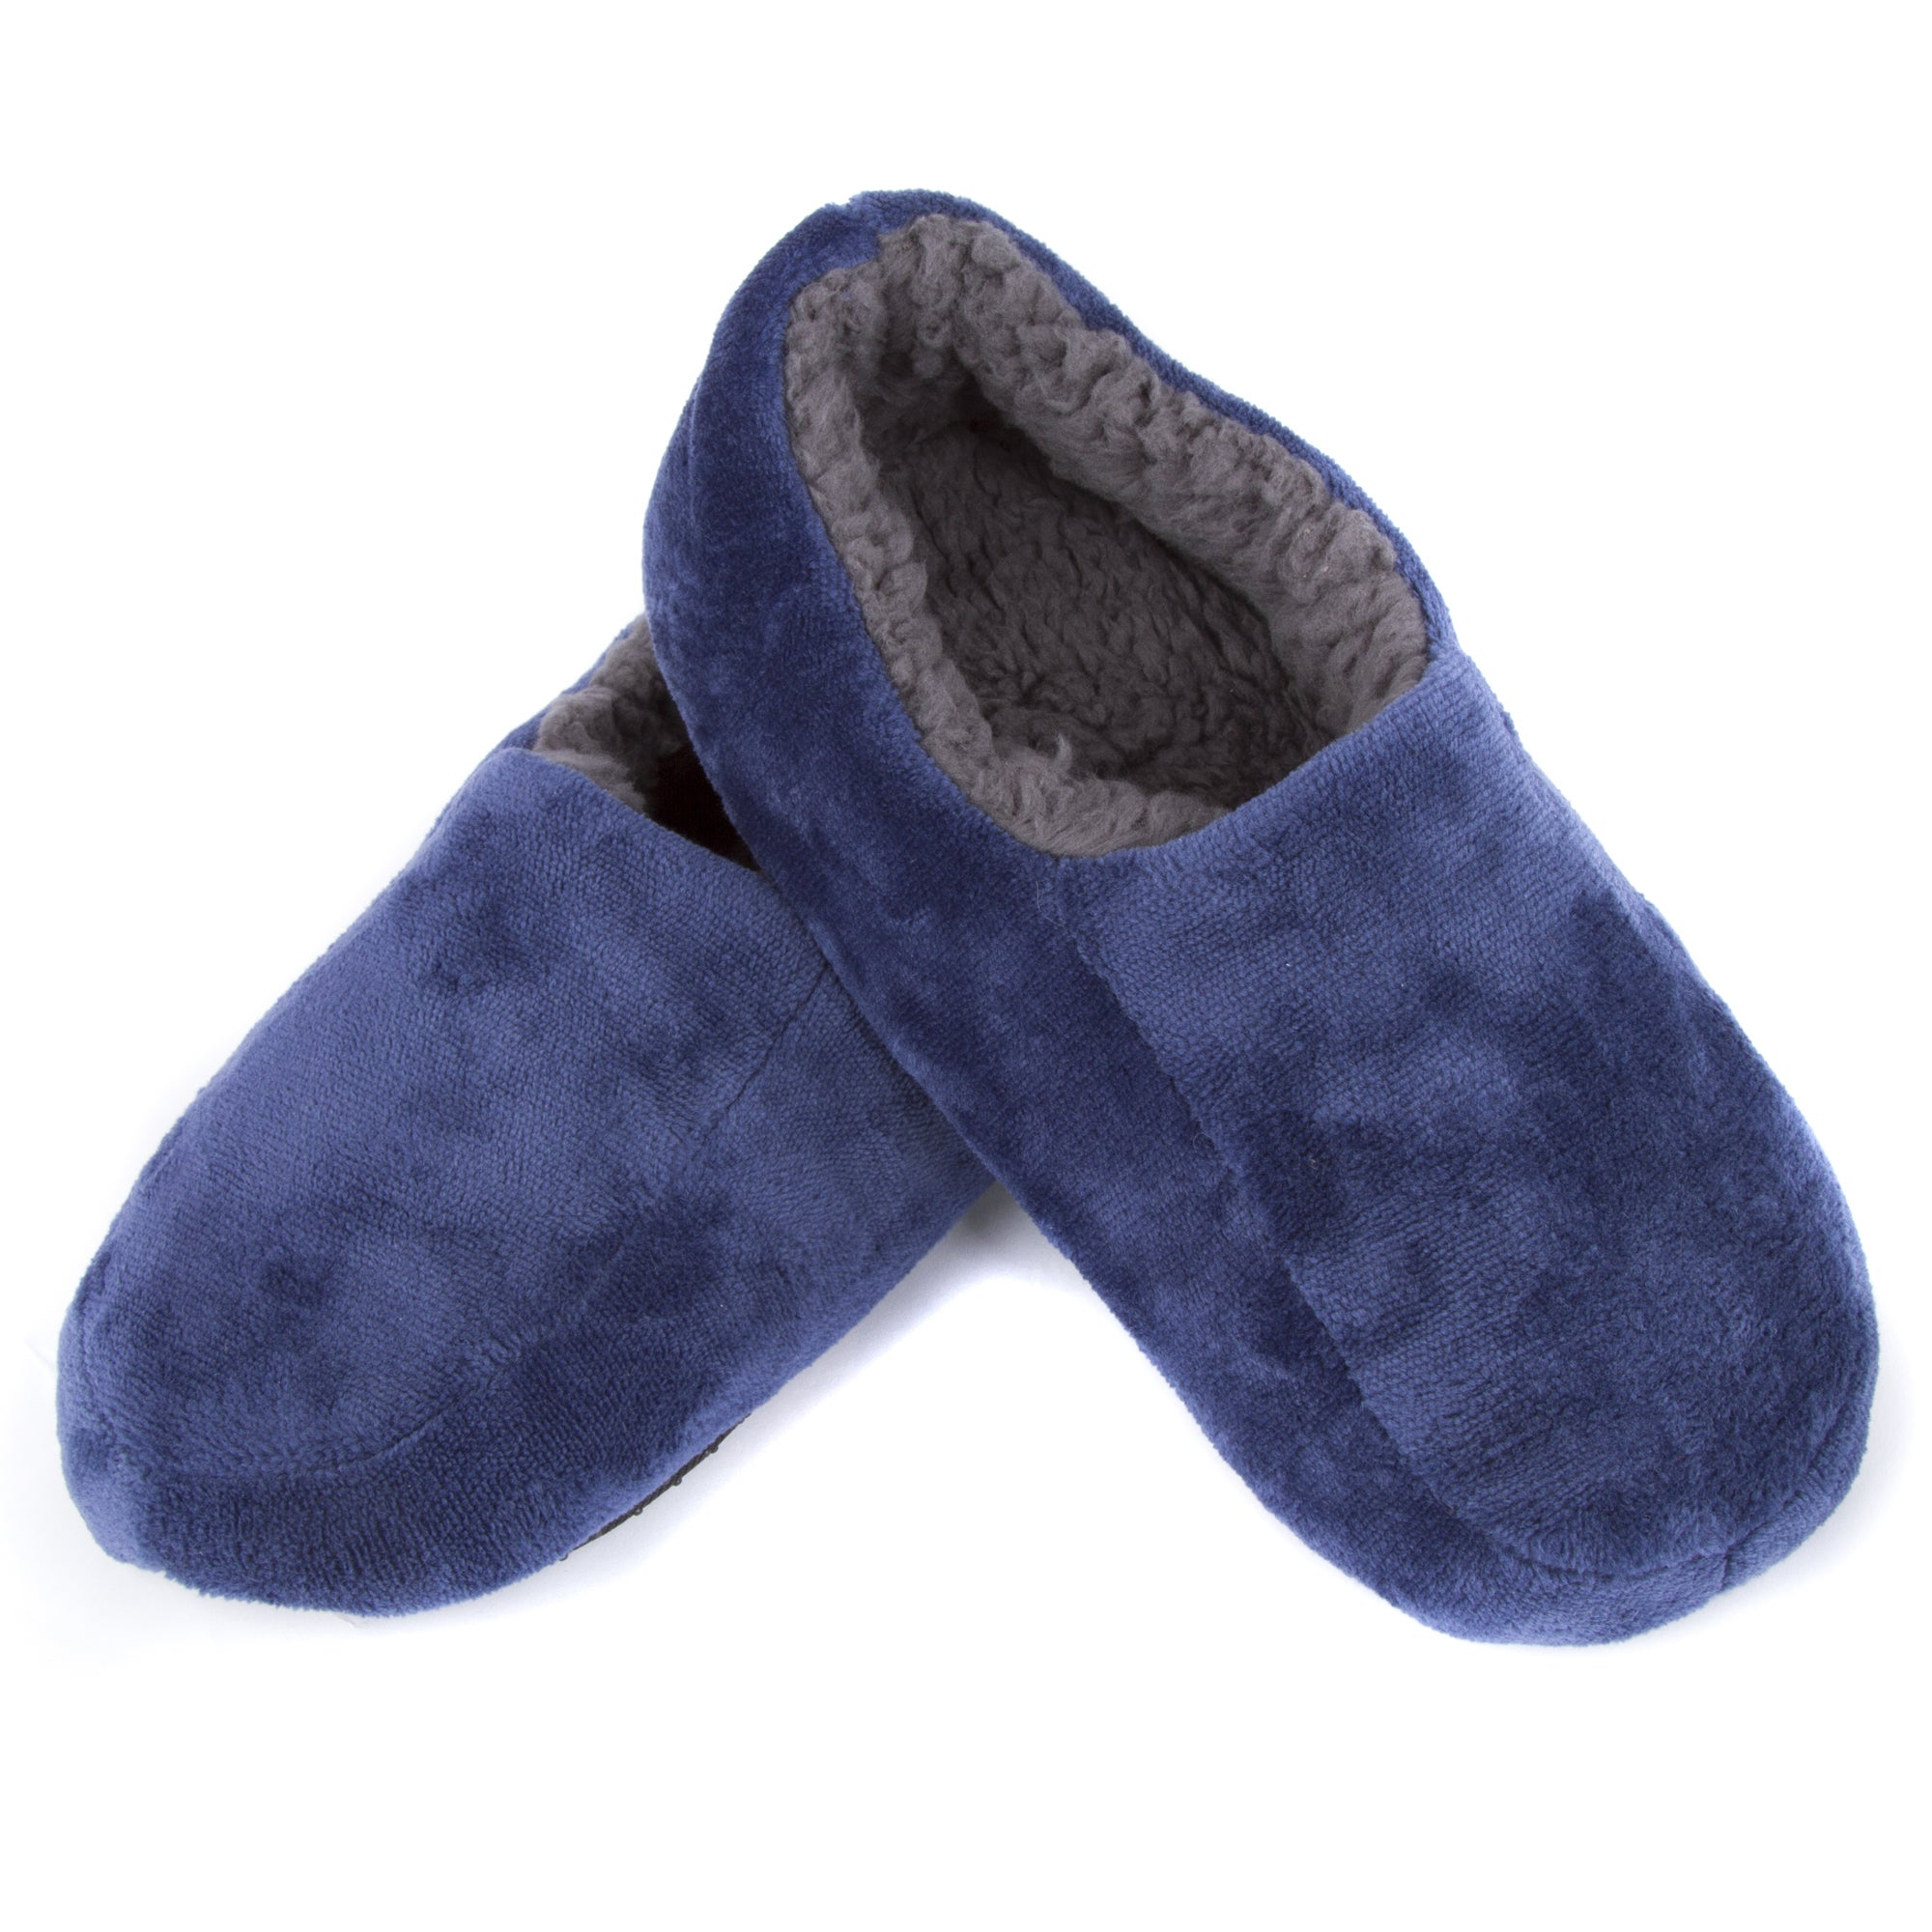 fe275e3a1445 Shop Leisureland Men s Solid Color Fleece Lined Cozy Slippers - Free  Shipping On Orders Over  45 - Overstock - 13434721